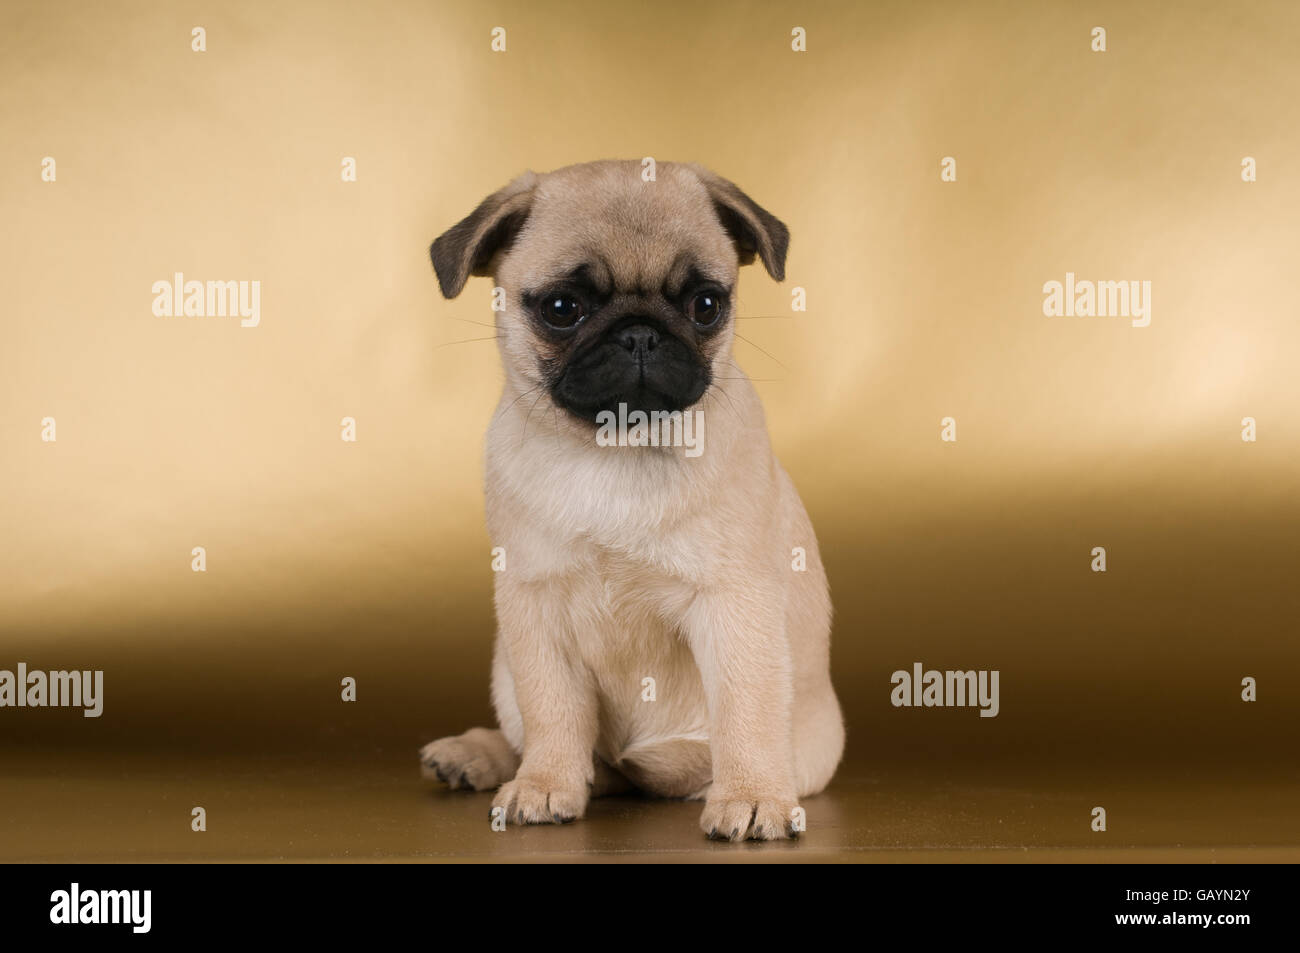 Pug puppy on golden background - Stock Image